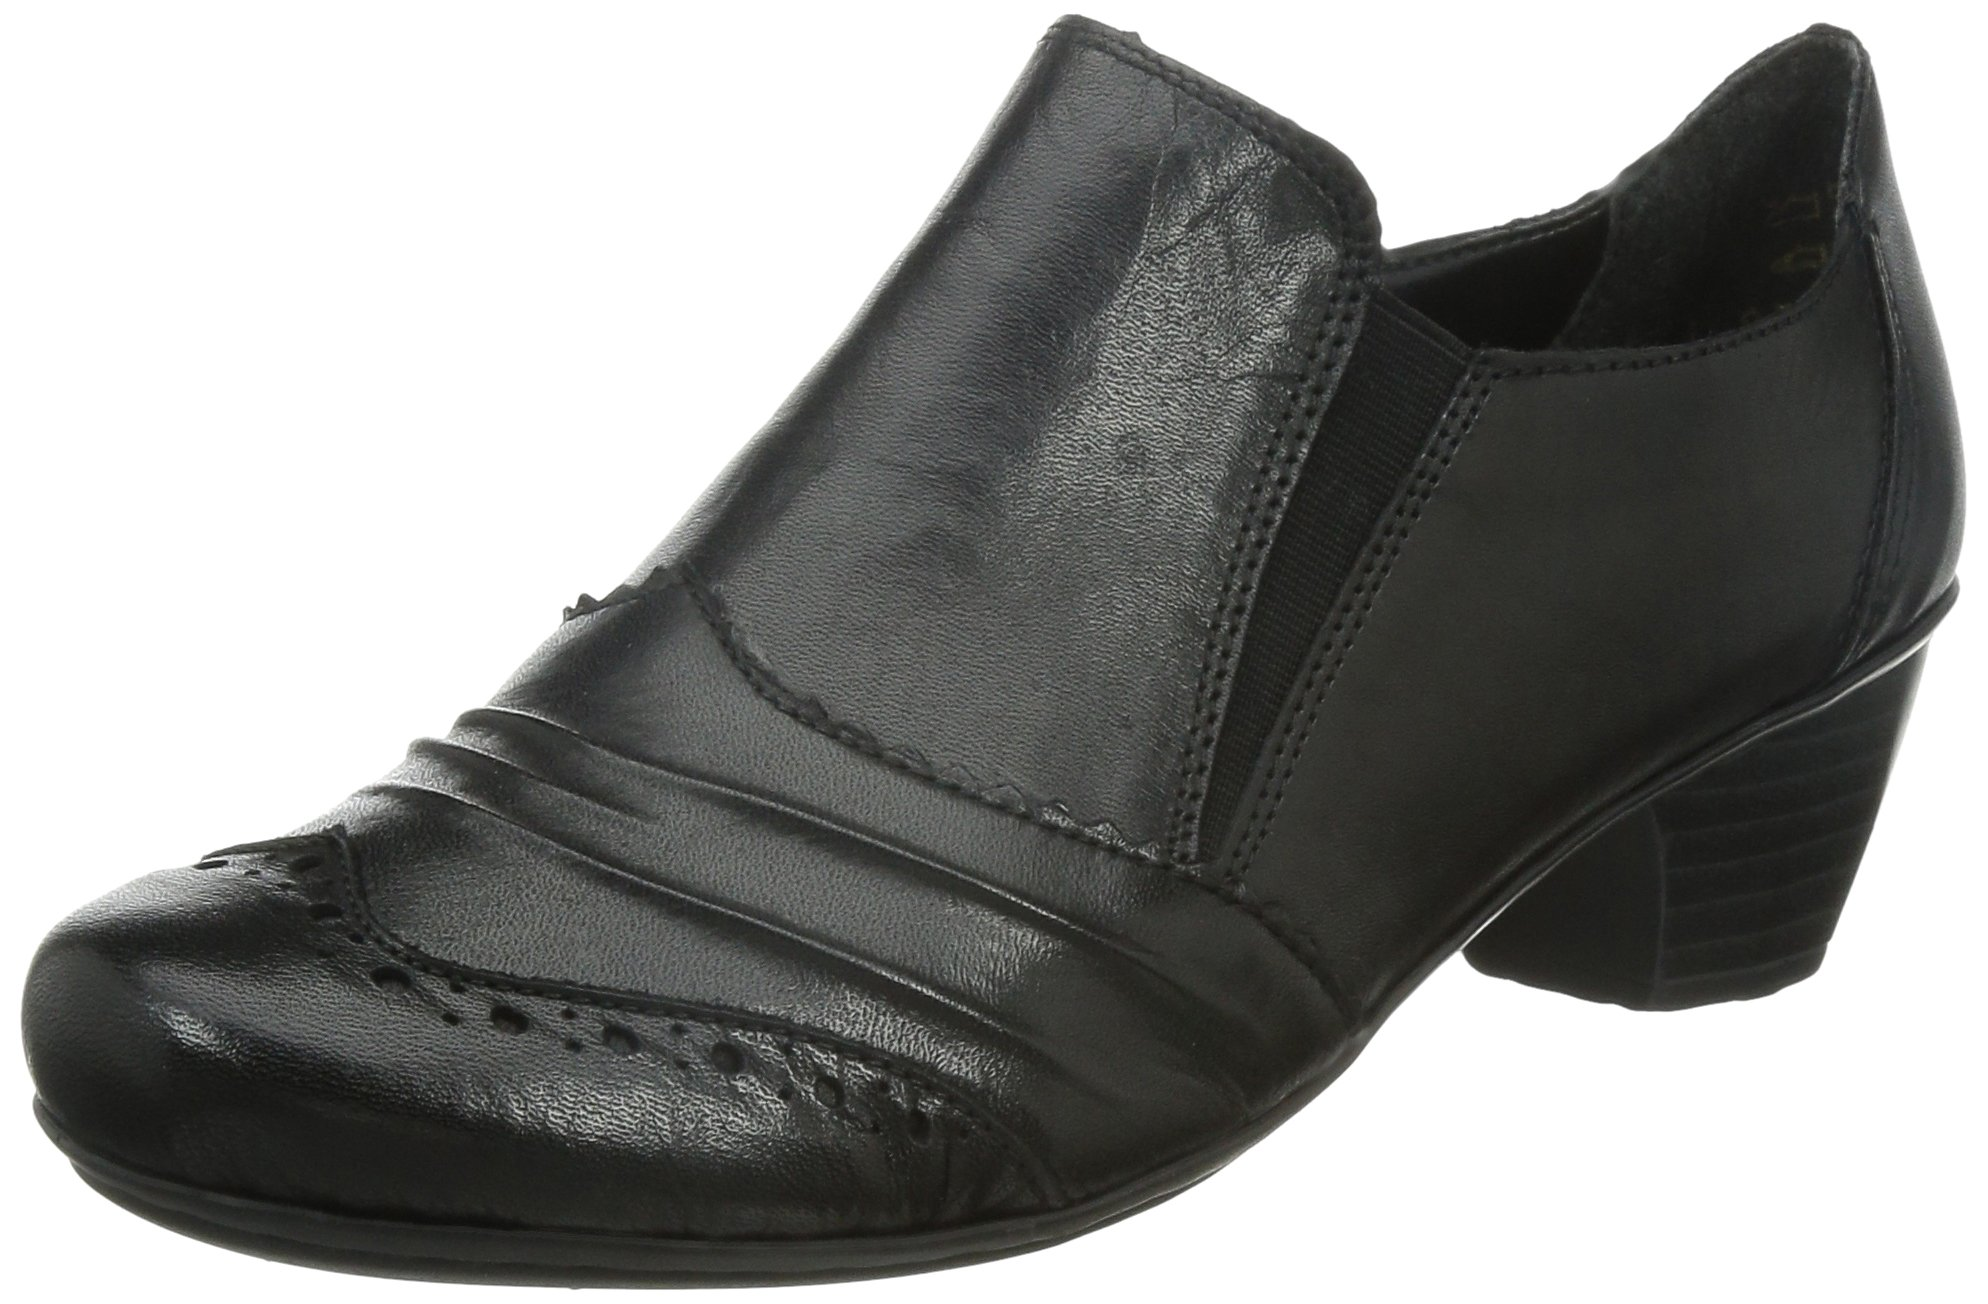 Rieker Odyssey Womens High Cut Court Shoes 39 M EU/ 8-8.5 B(M) US Black